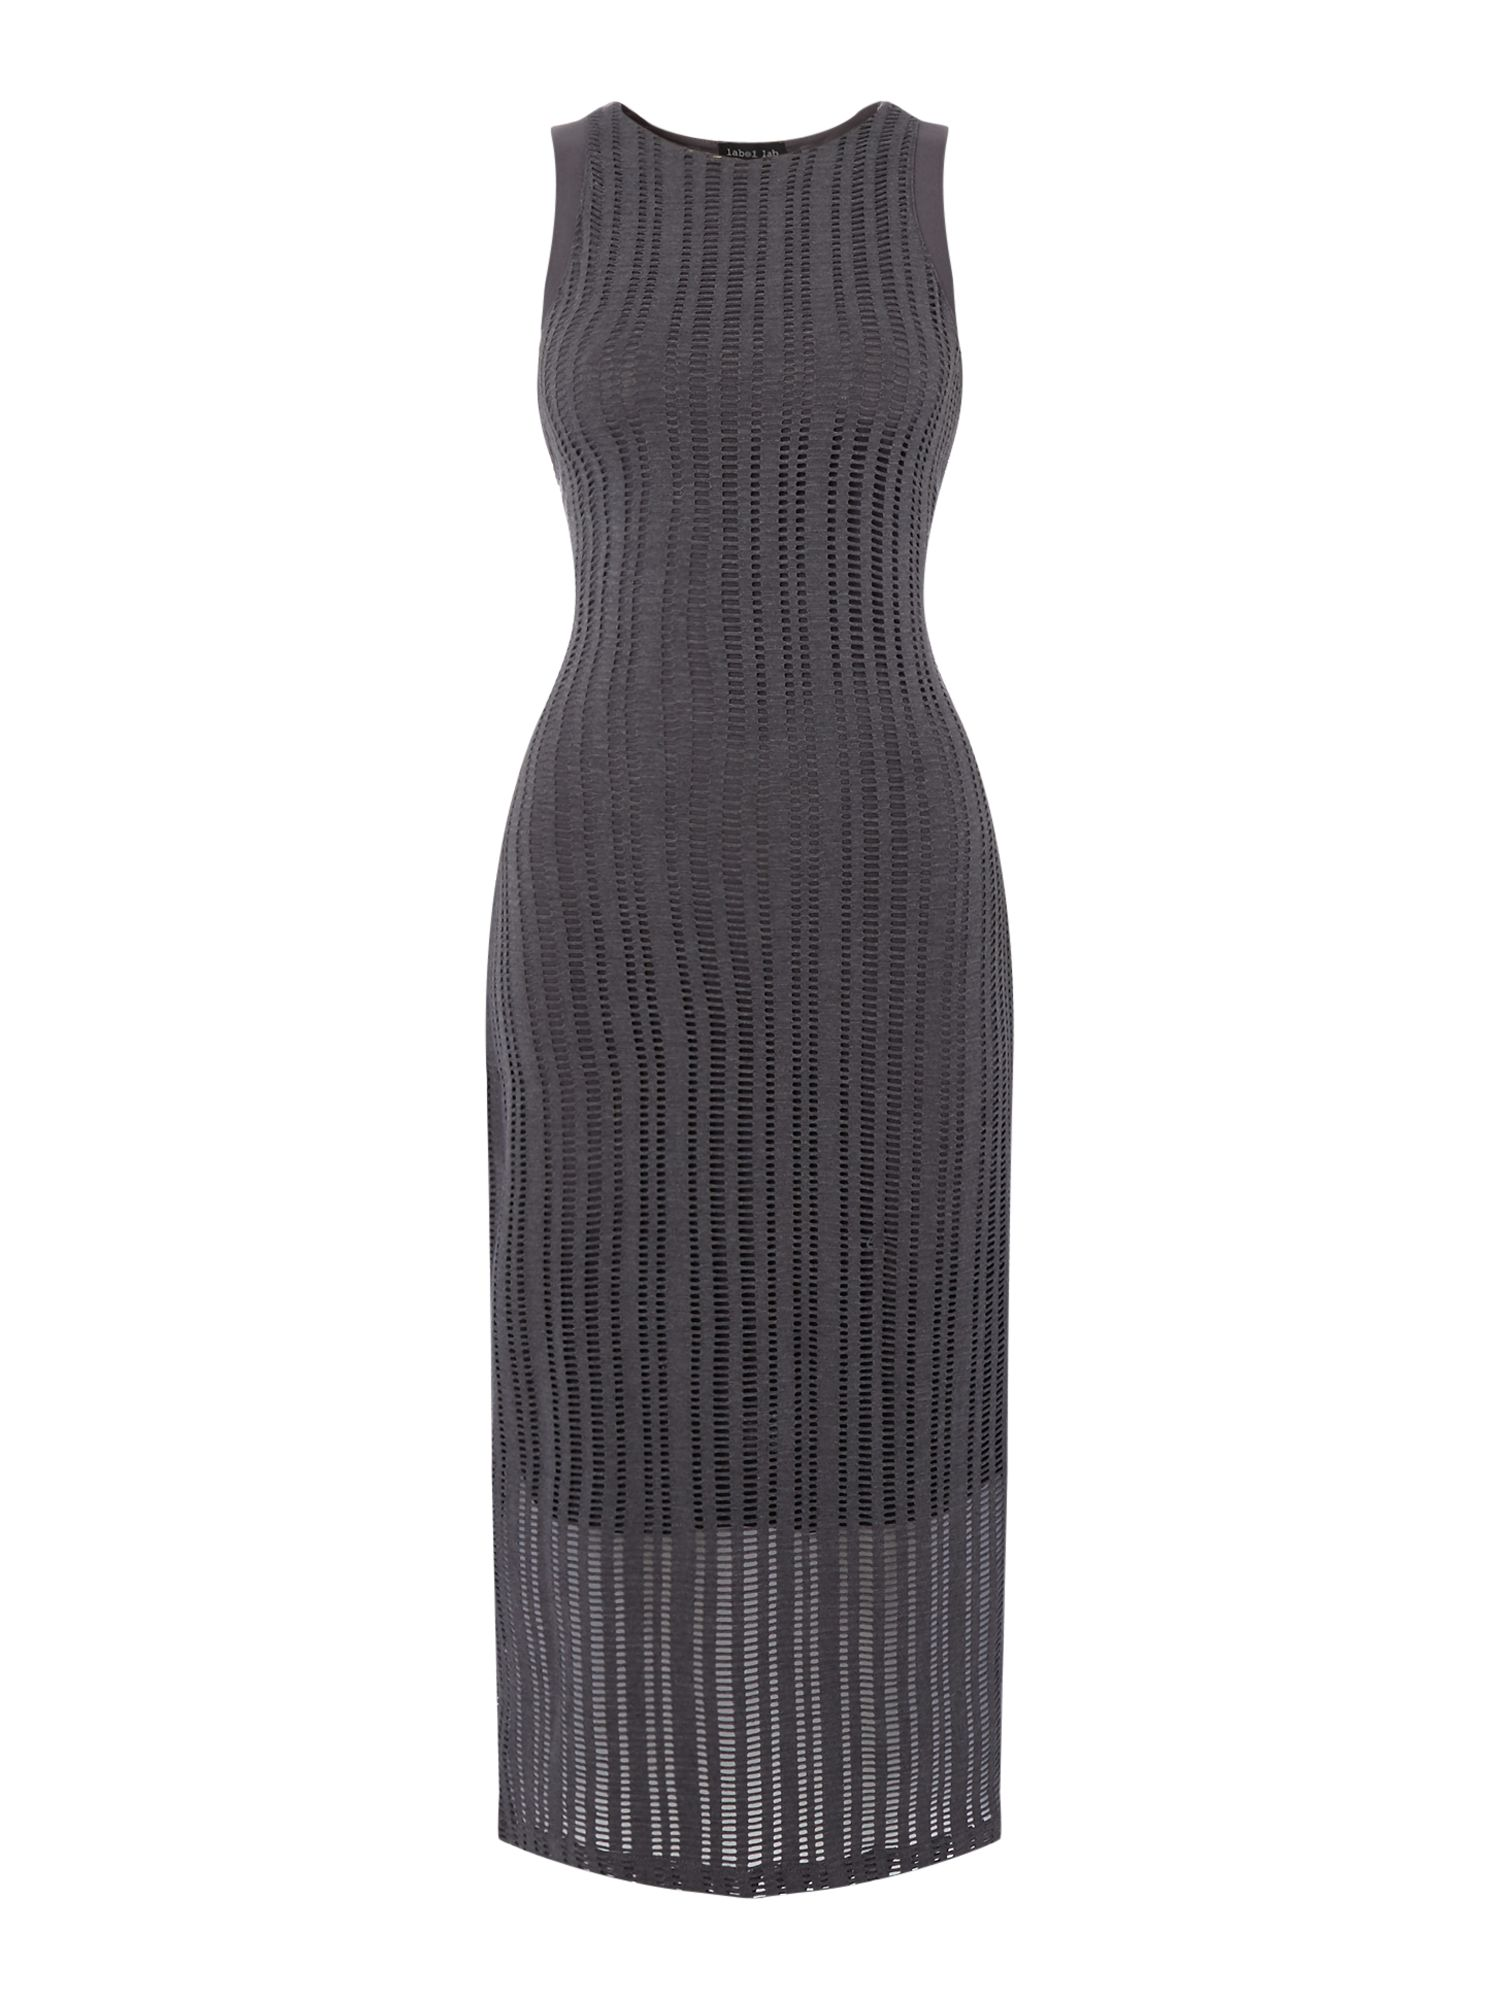 Label Lab Ladder Jersey Dress, Grey